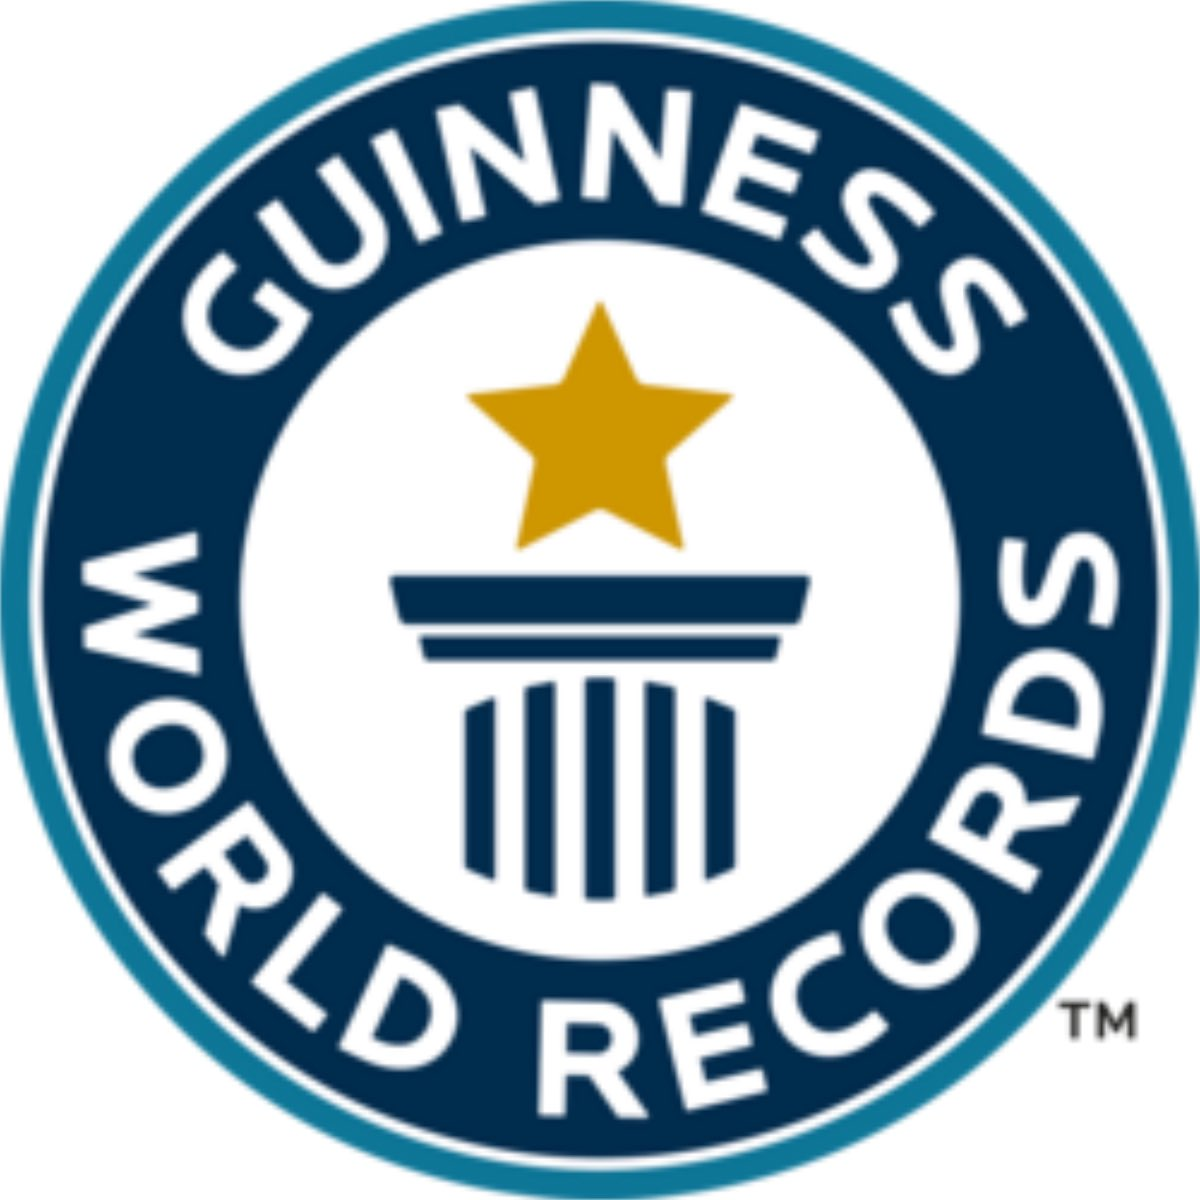 I'm now a GUINNESS WORLD RECORD holder for the most translated commercially broadcast short film. The short film, 'Peterloo - Witnesses To A Massacre' is available to watch on Amazon Prime. It's a fab historical documentary about the 1819 St. Peter's Field Massacre in Manchester. https://t.co/b6QEPQzvjd